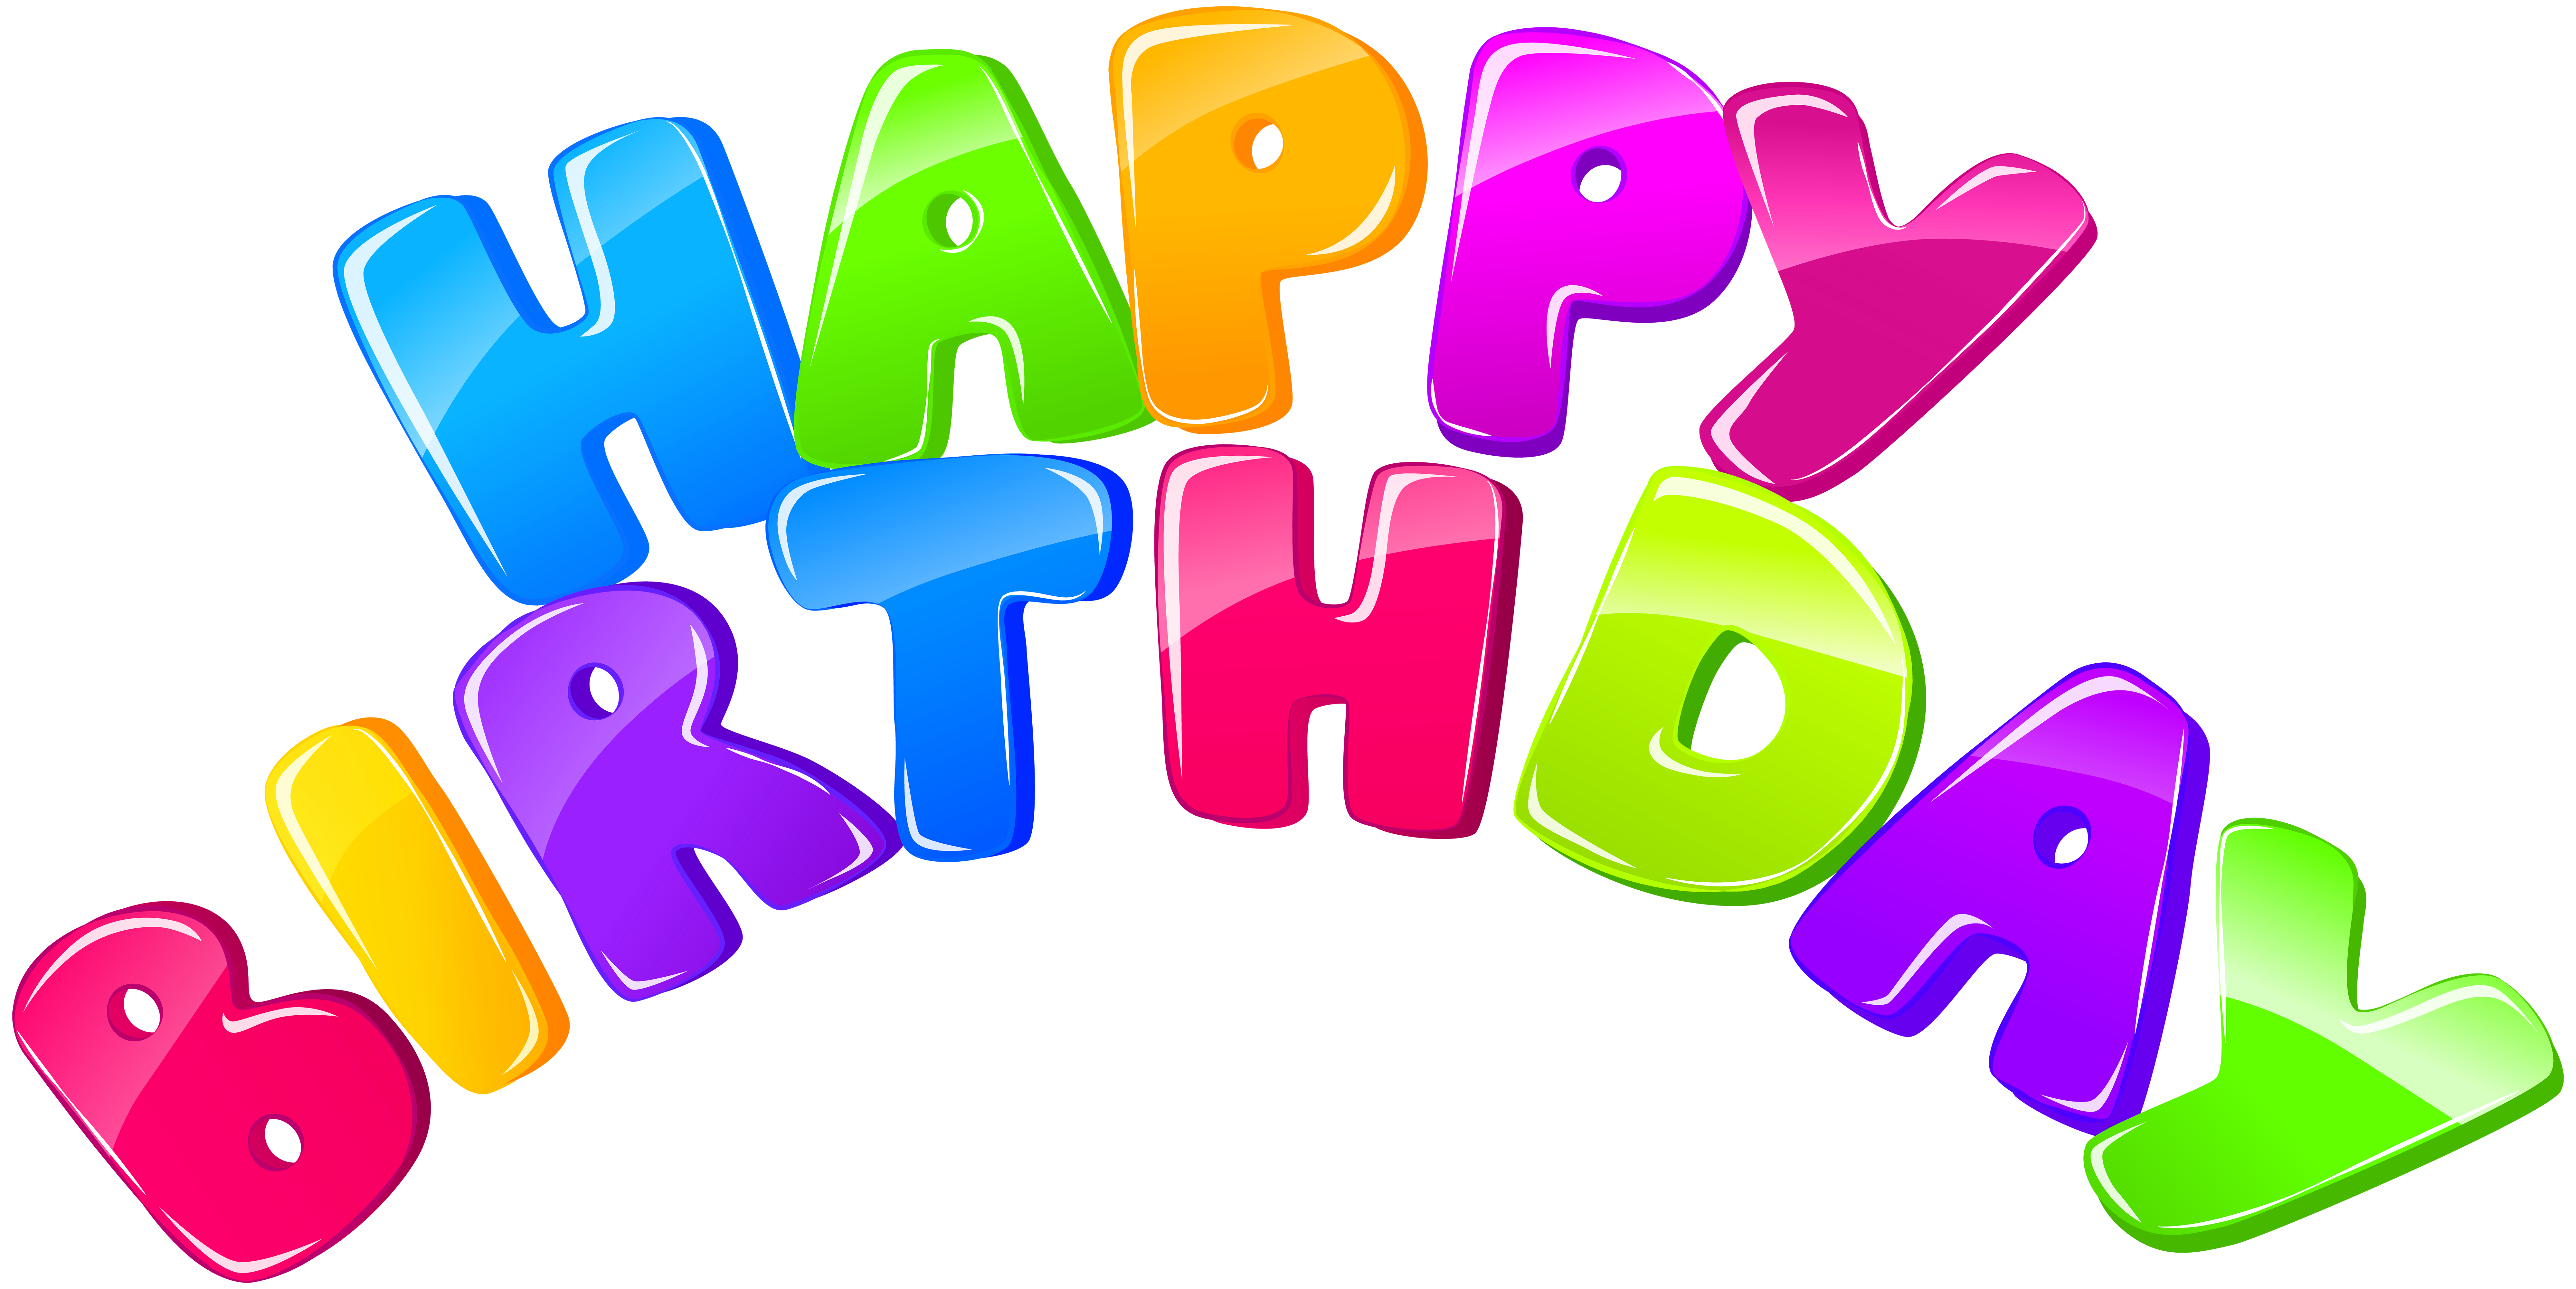 picture free download Png clip art image. Free clipart happy birthday